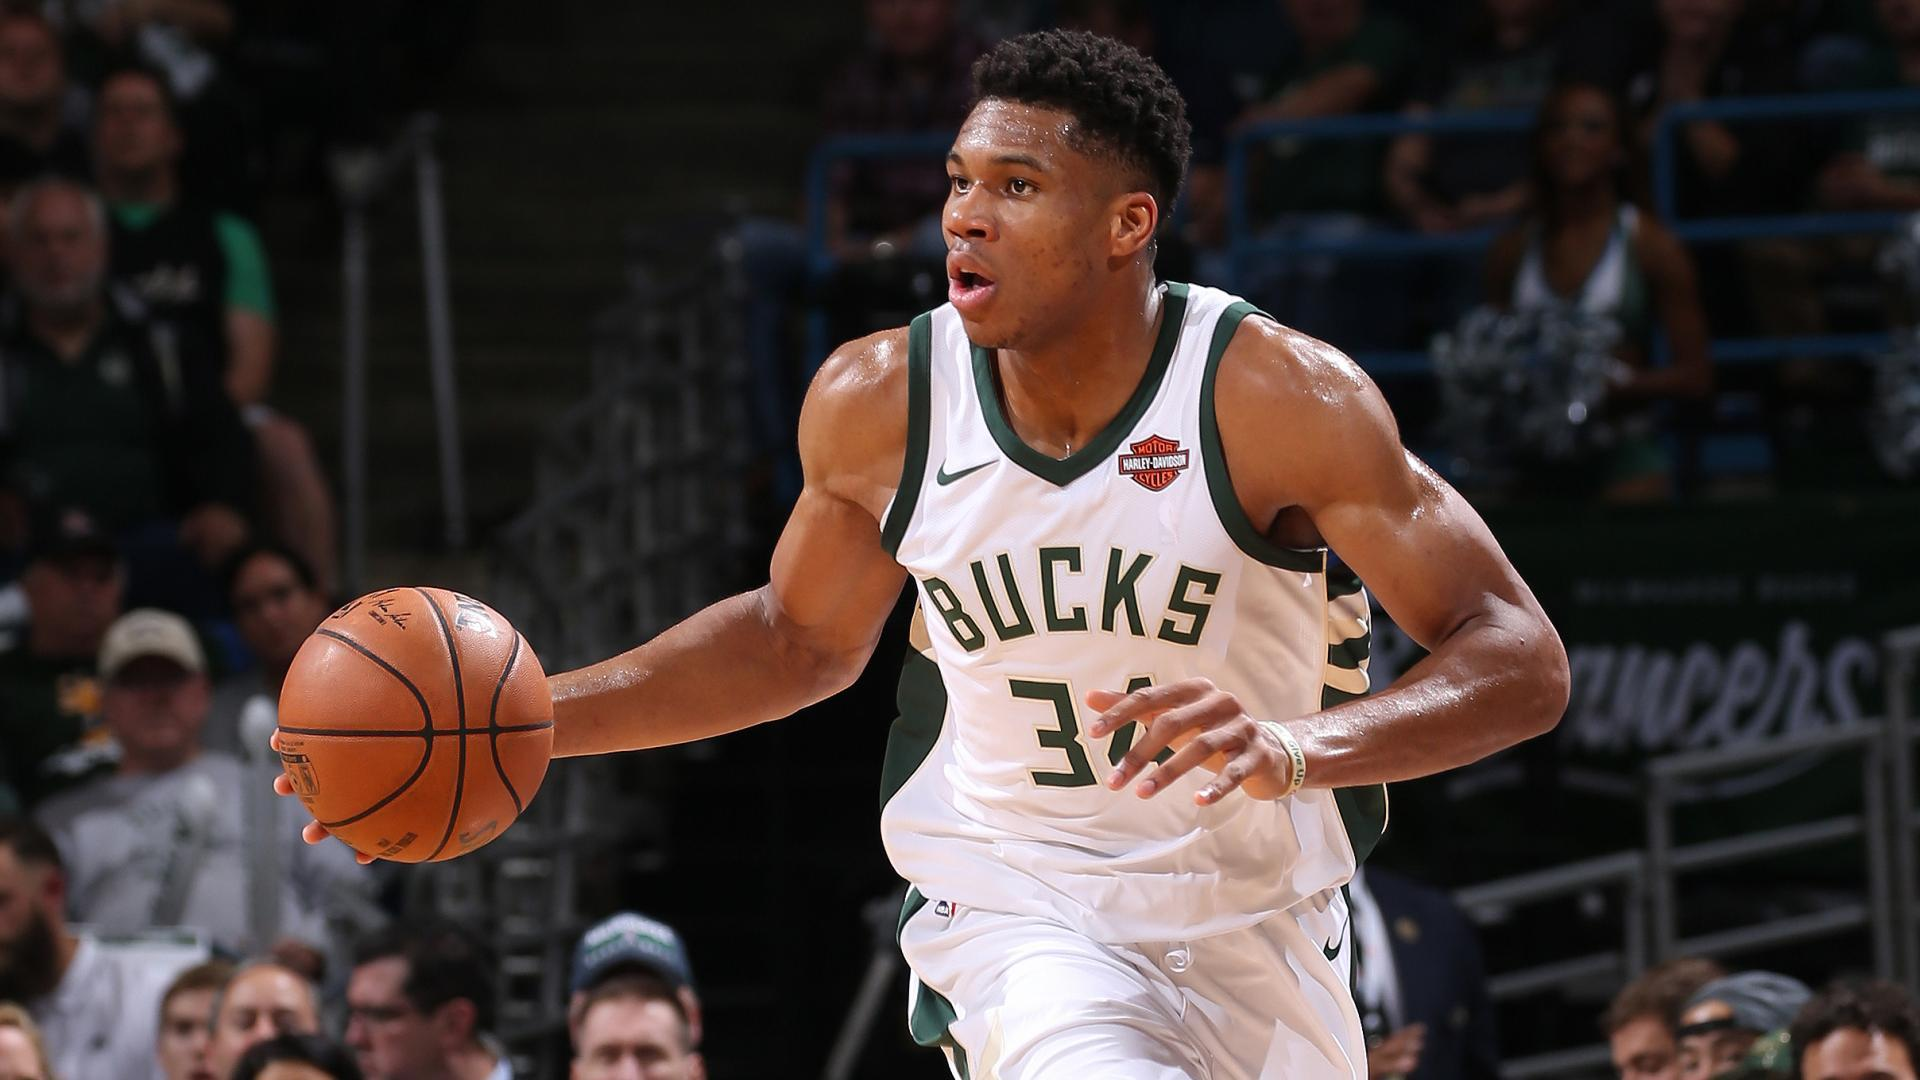 giannis antetokounmpo widescreen computer background 586